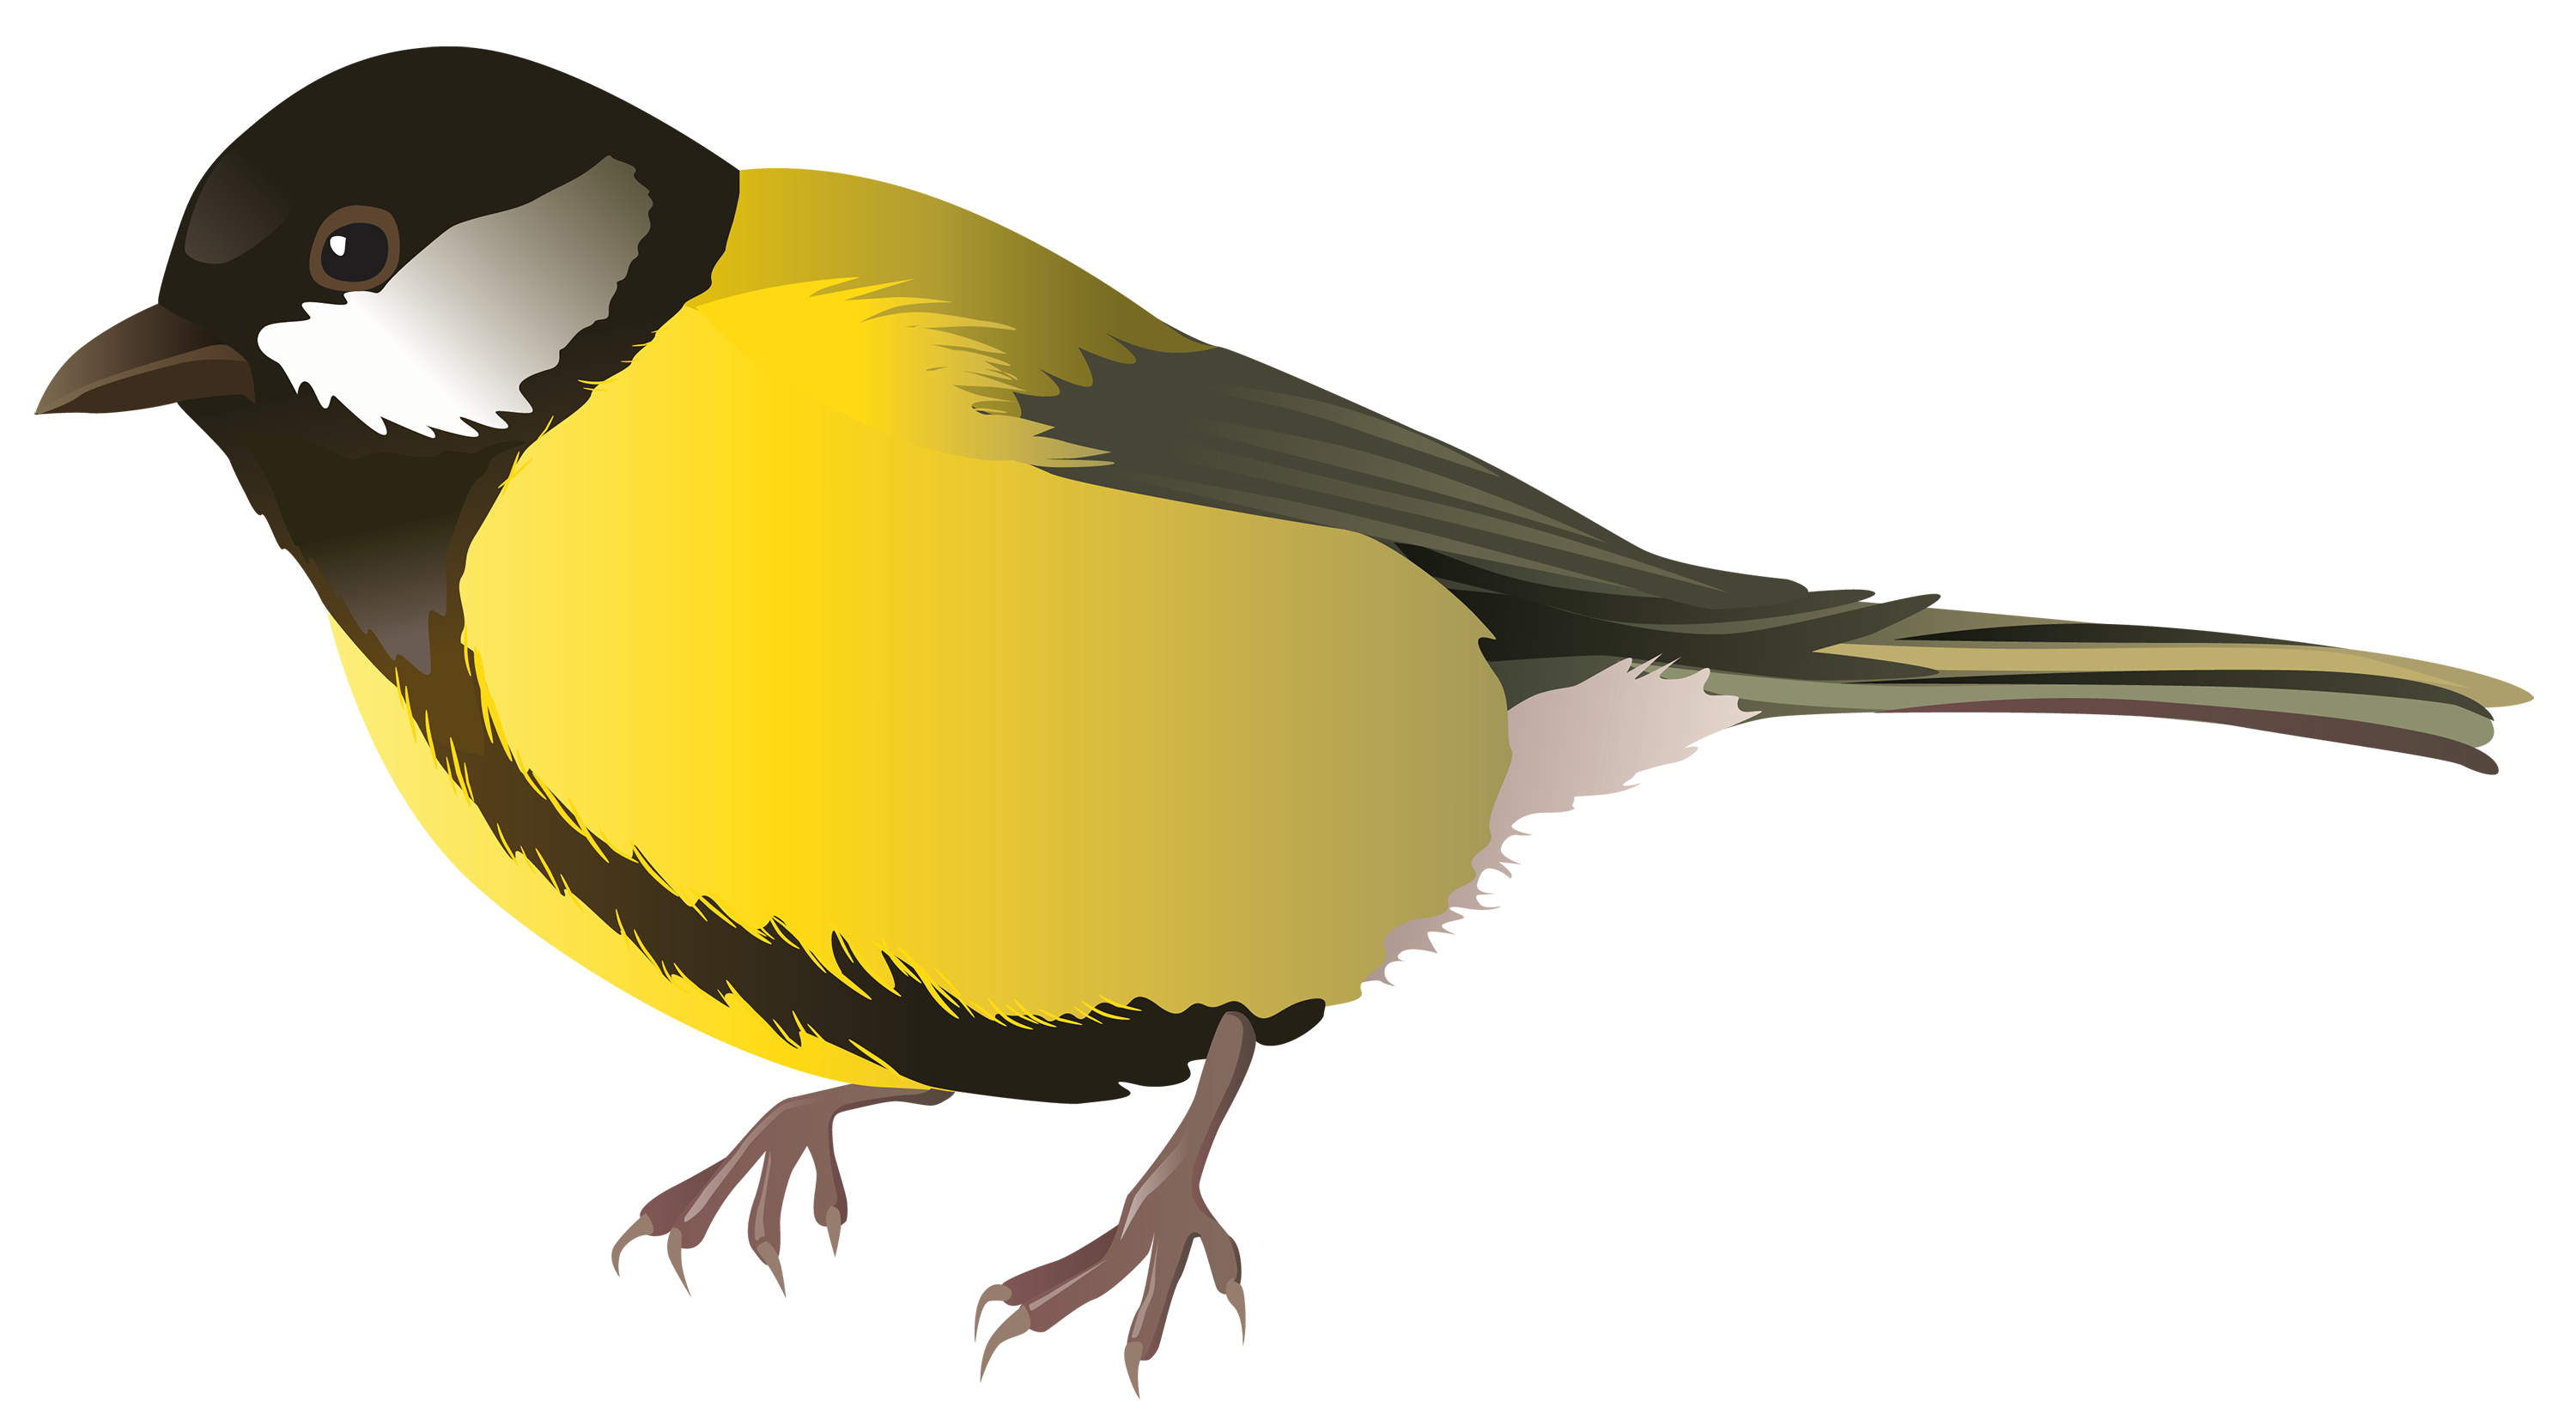 3000x1646 Homely Ideas Bird Clipart Cartoon Bunny Yellow Png Best Web Black